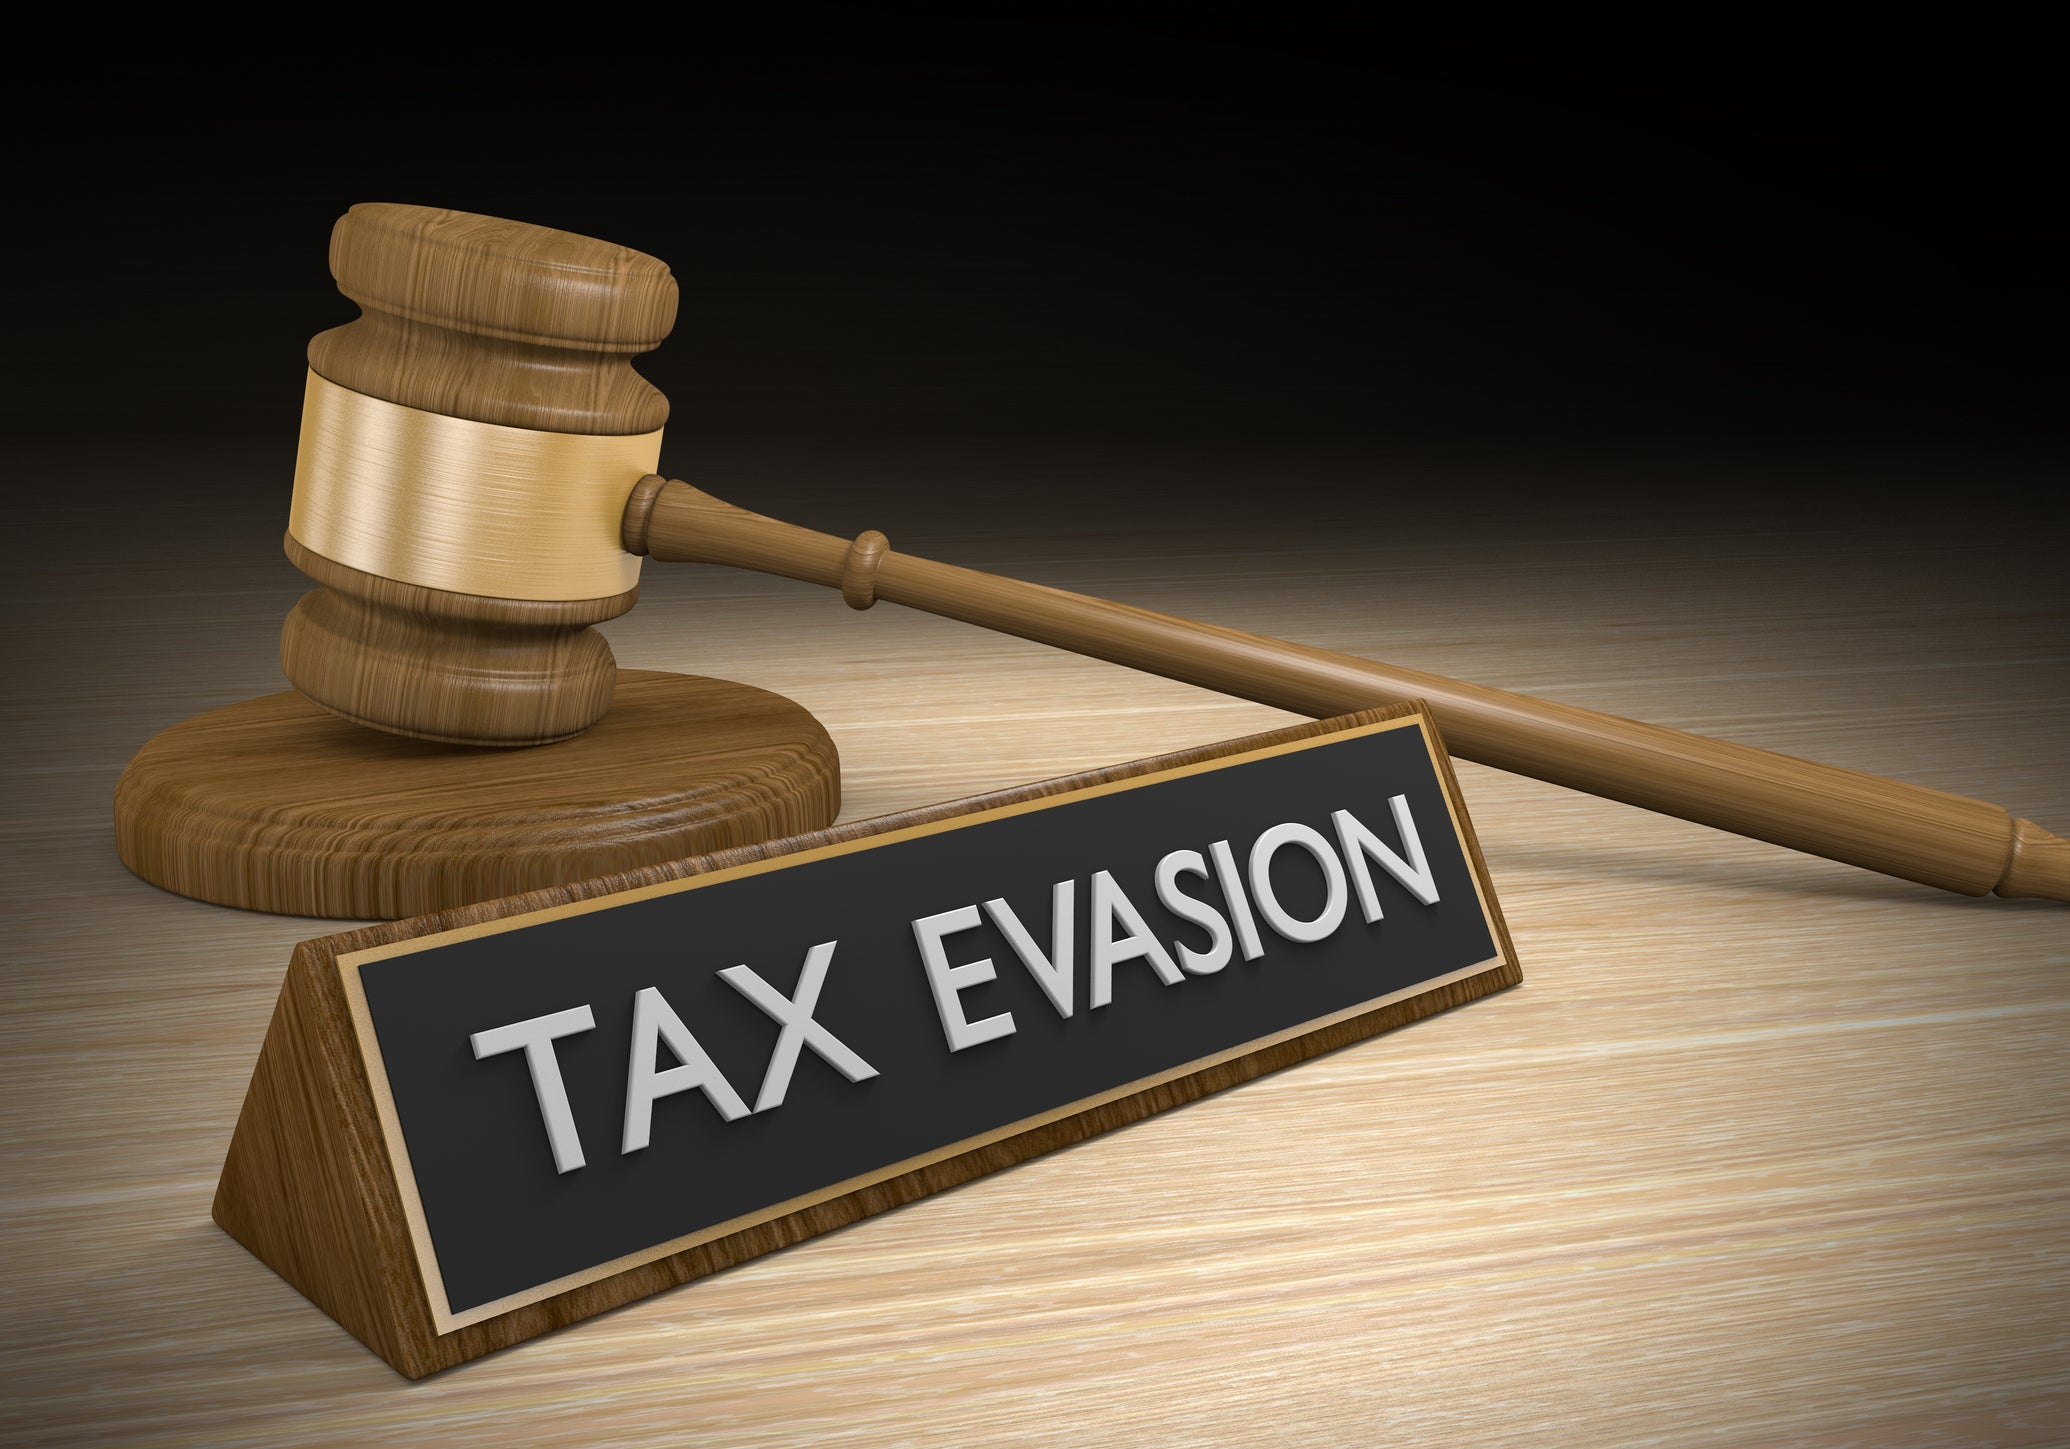 Offshore tax evasion day are numbered